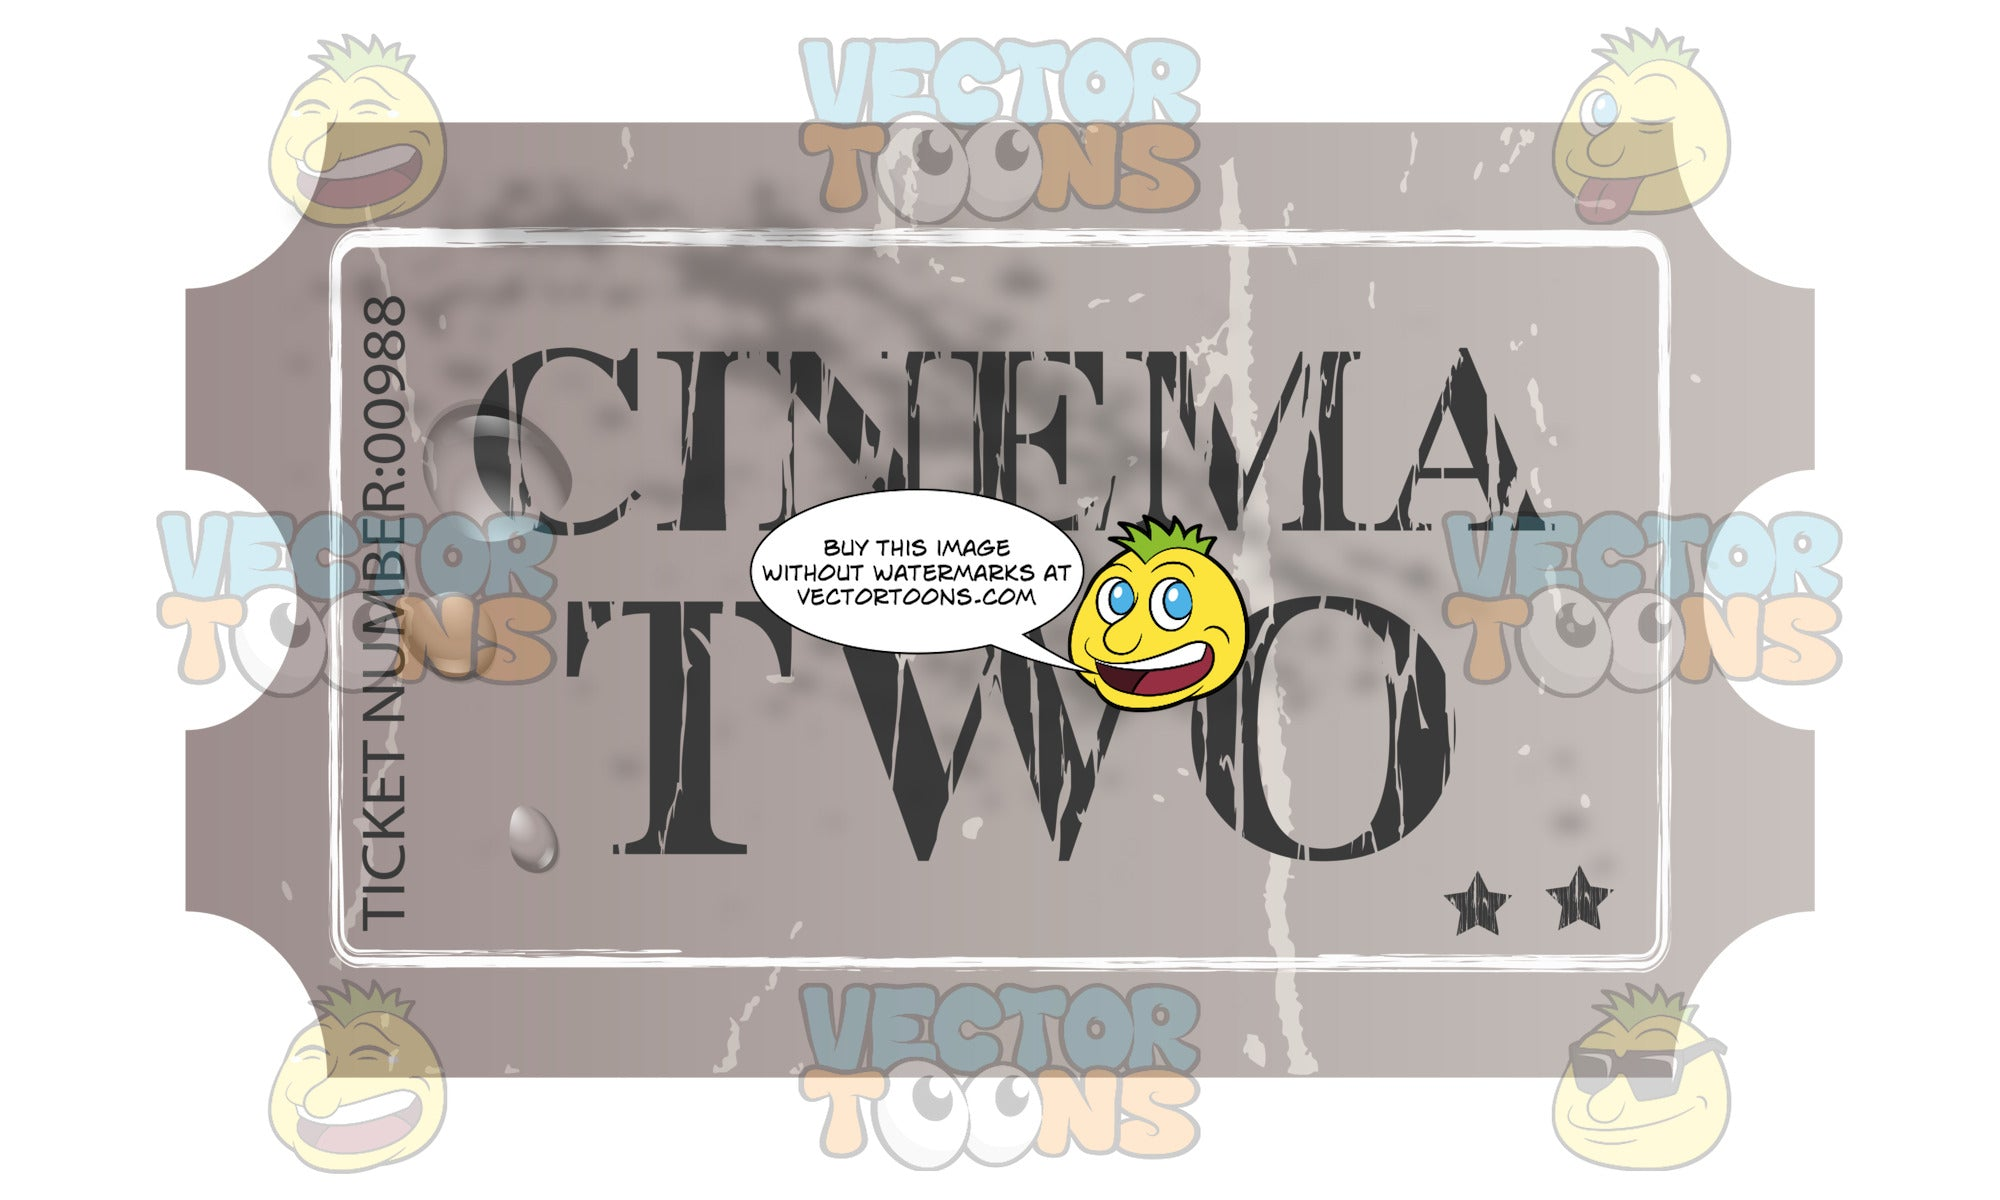 Grungy Grey Cinema Movie Ticket With Creases, Admit Two